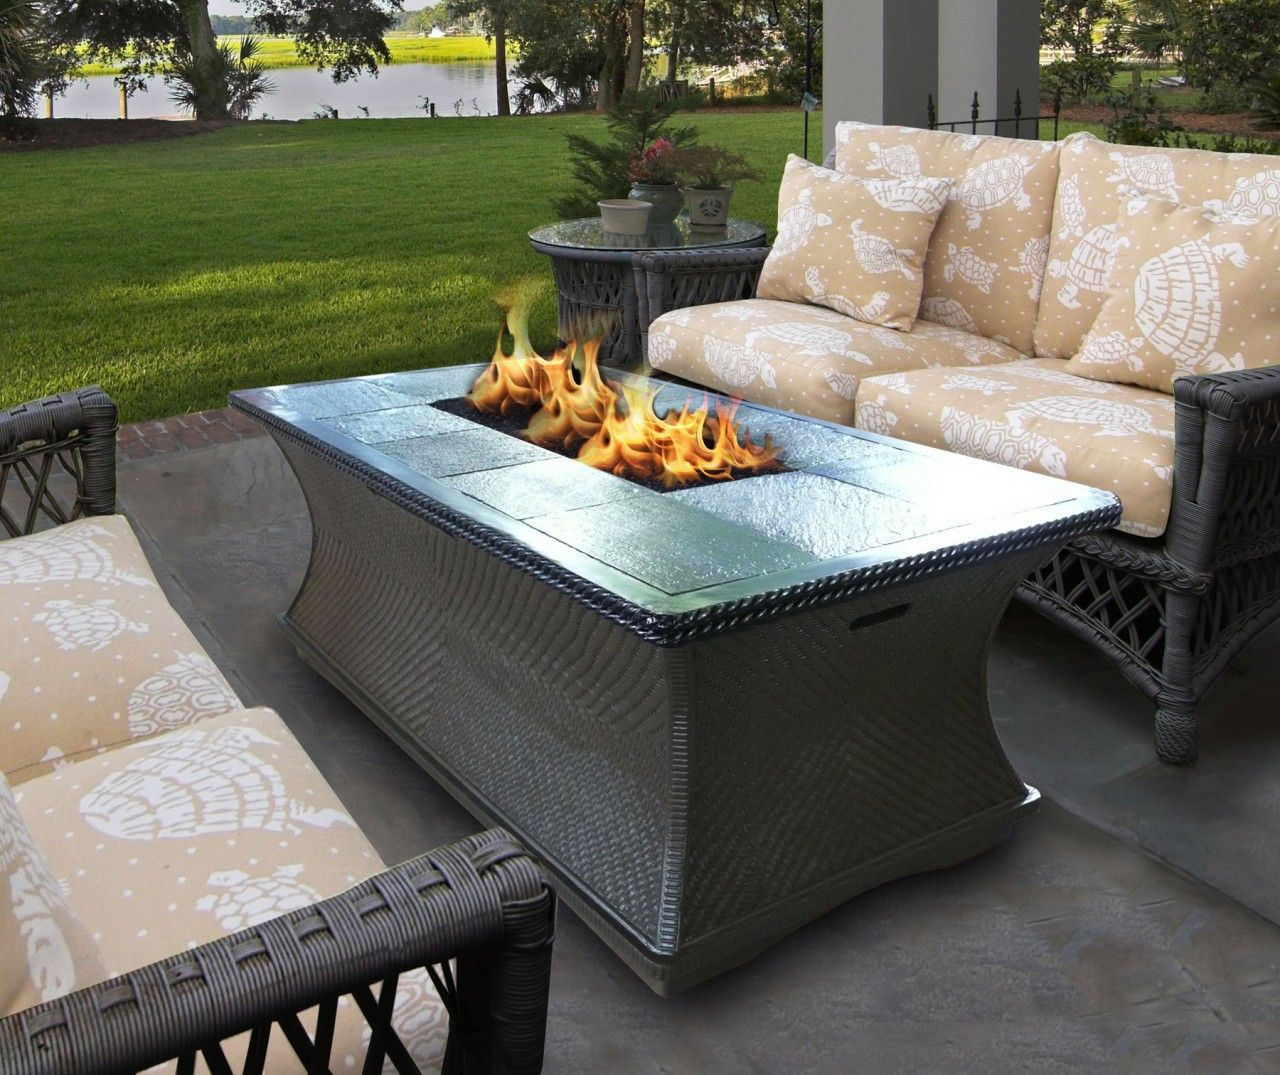 Awesome California Outdoor Concepts Monterey Firepit Coffee Table   Outdoor Fire  Pits U0026 Fireplaces   California Outdoor